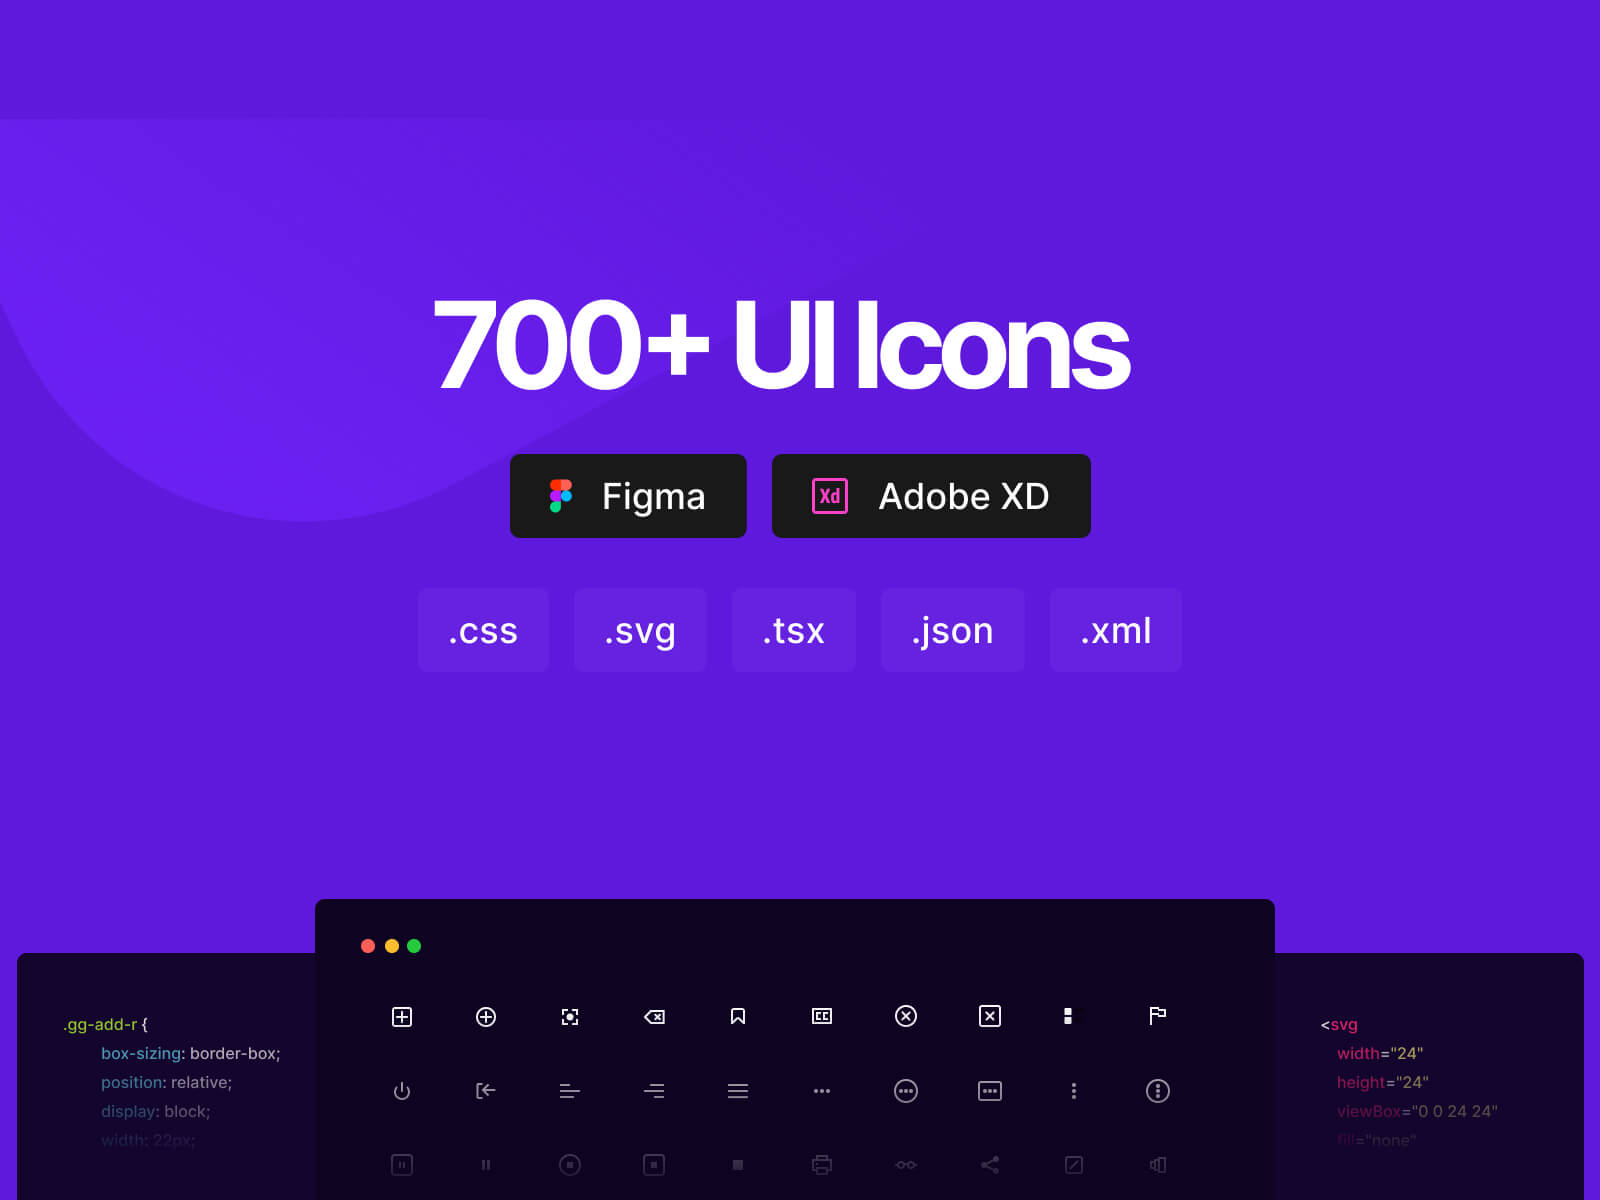 700+ Free Icons in Pure CSS, SVG,  Figma & Adobe XD | CSS.GG - 2.0 cover image